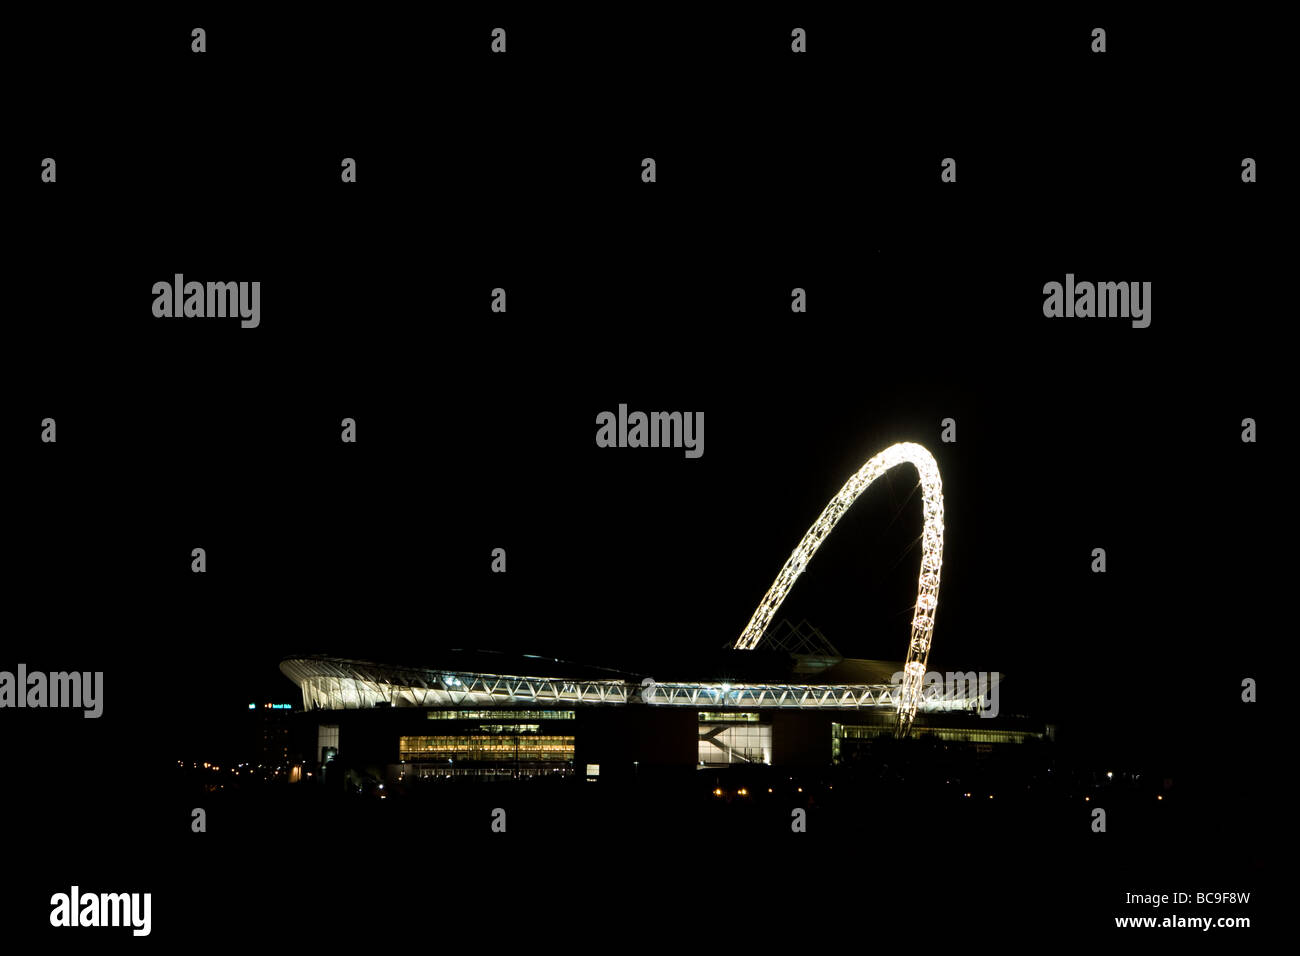 Wembley stadium at night - Stock Image